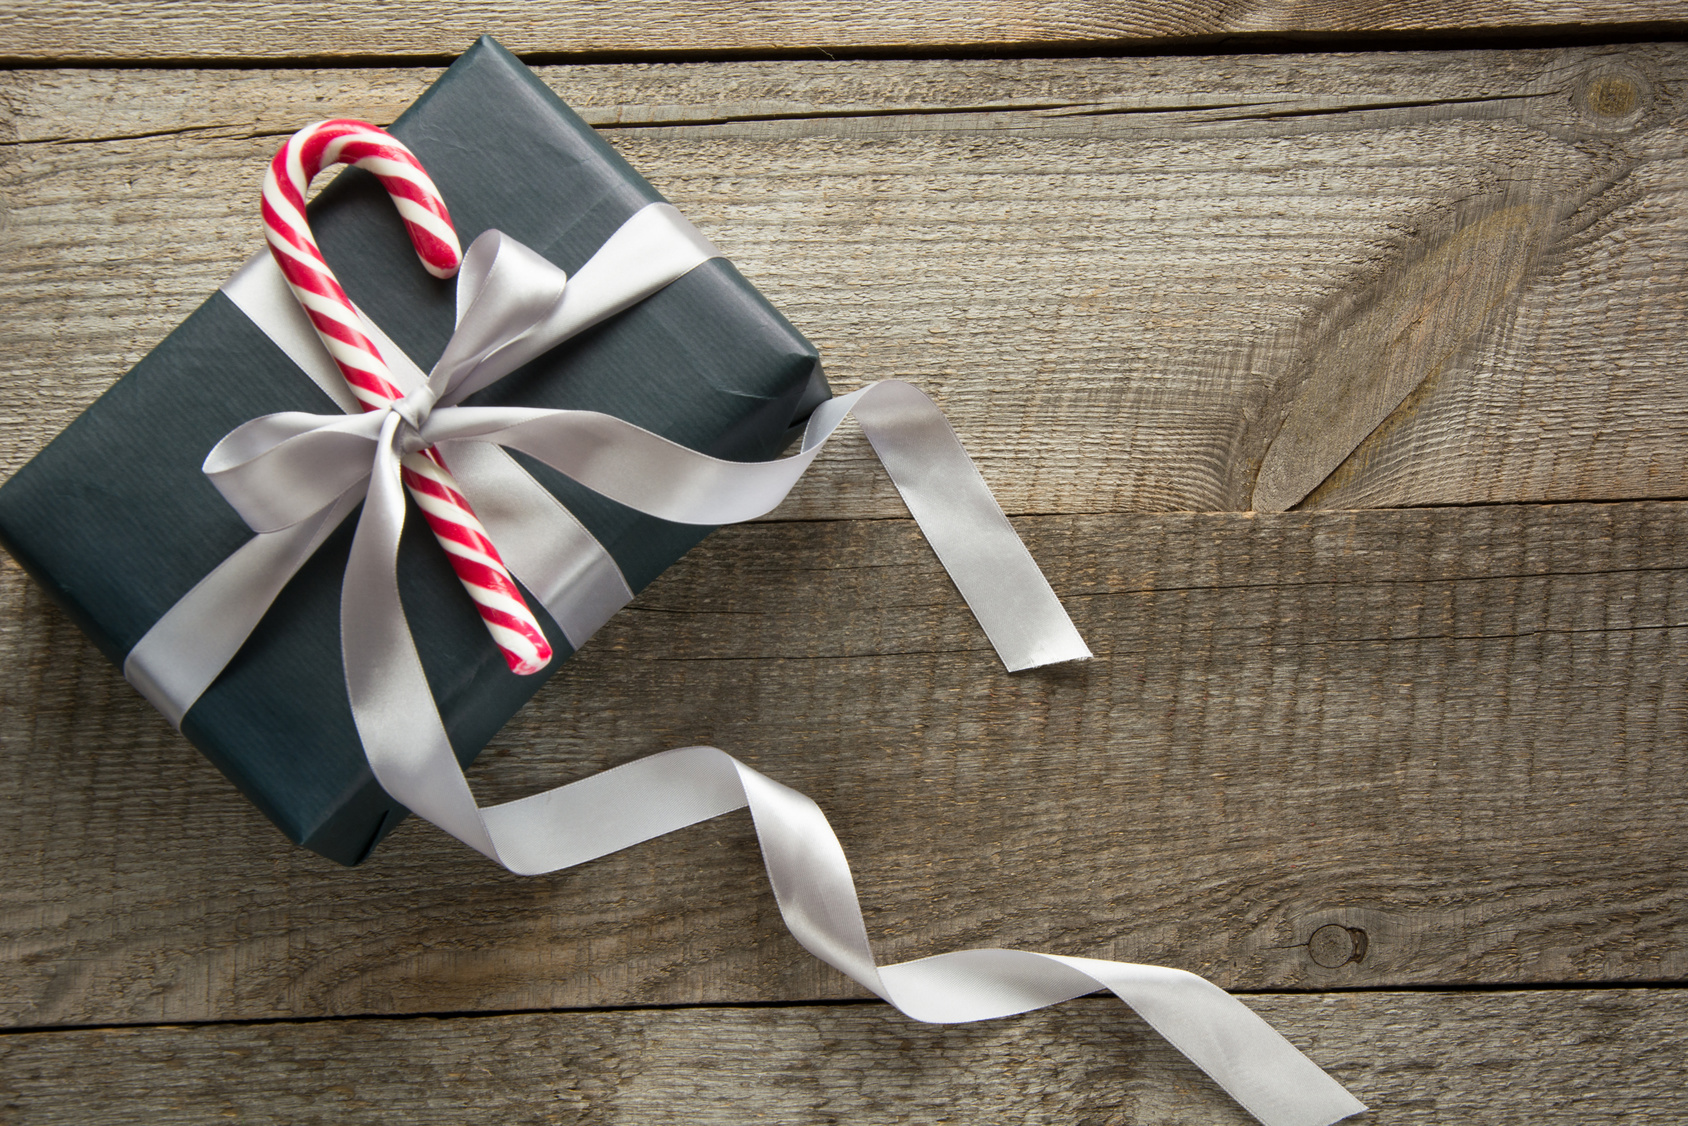 Trade In Those Unwanted Gift Cards - Hudson's Bay Financial Services